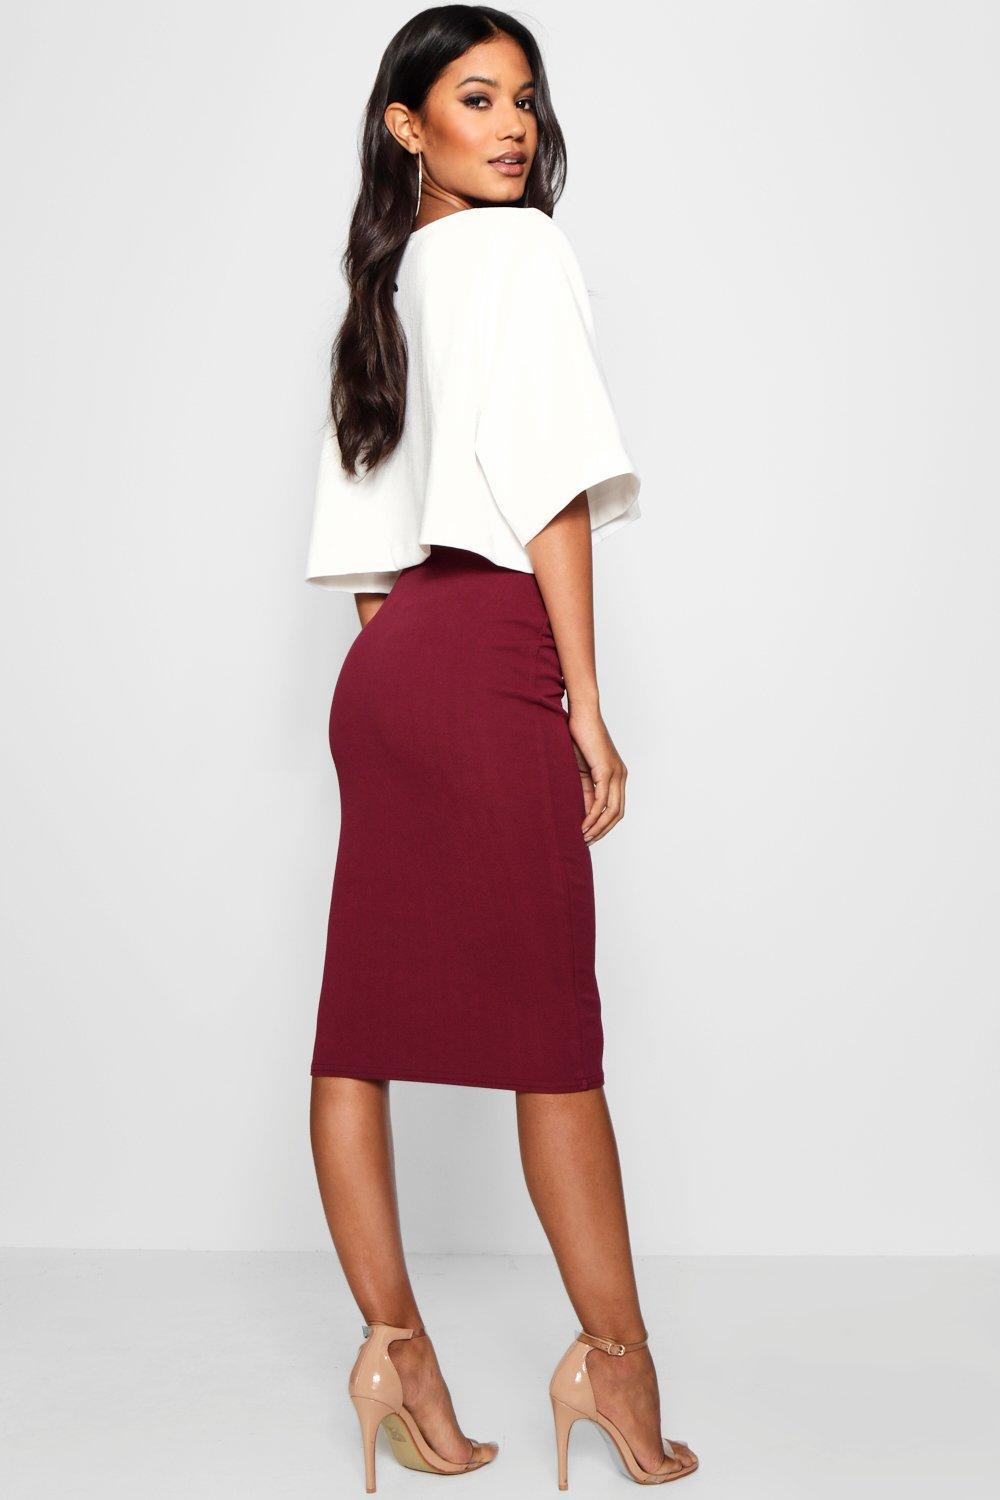 9209fc4d182 Boohoo - Red Boxy Crop And Midi Skirt Co-ord - Lyst. View fullscreen